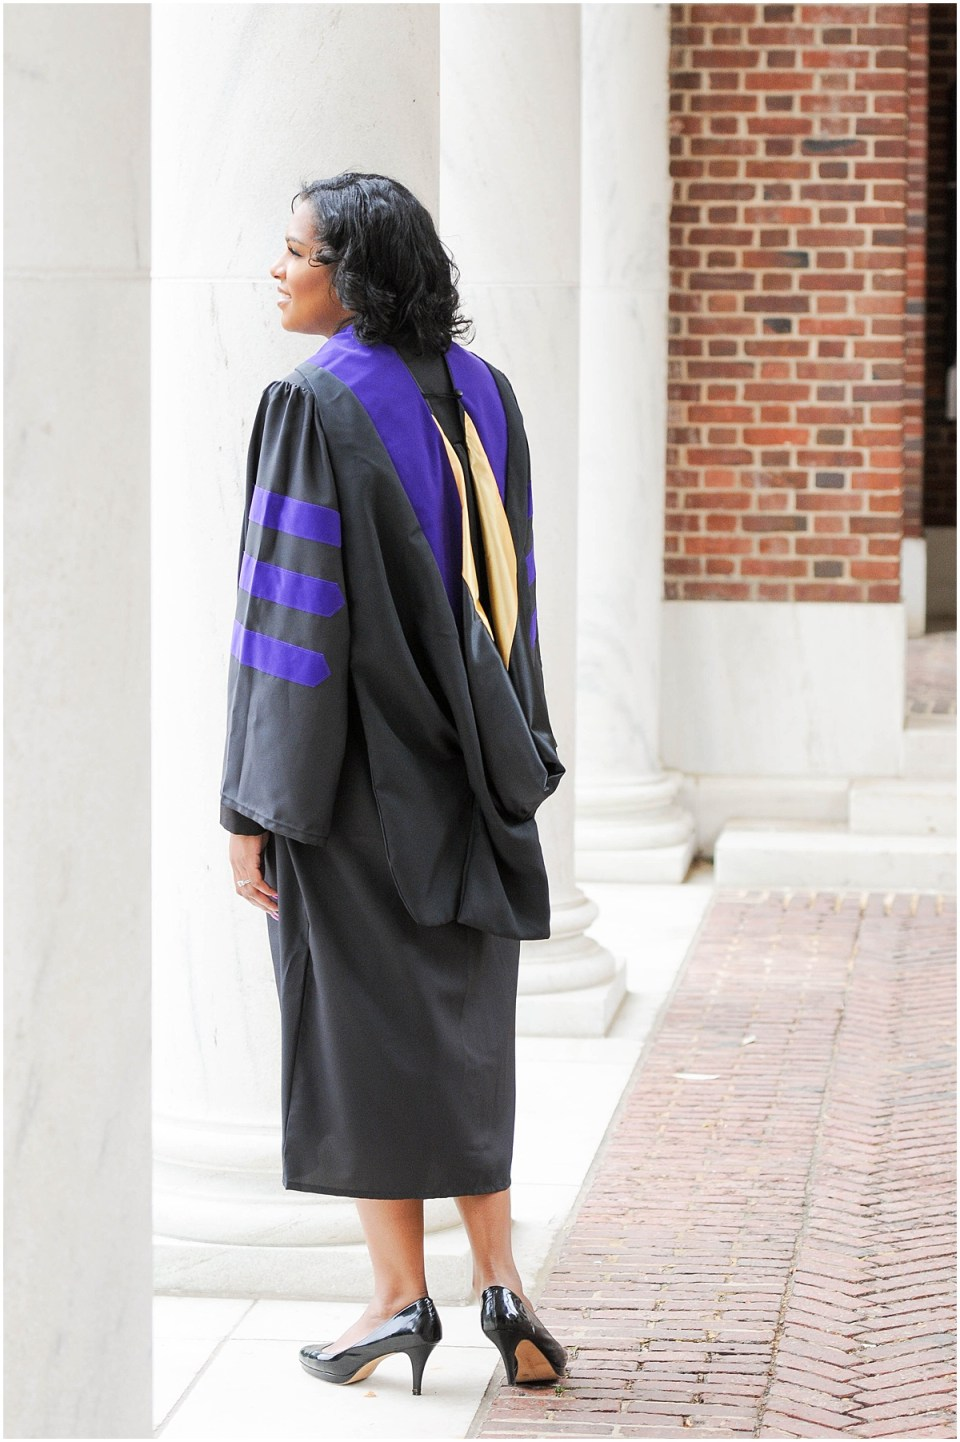 Law school graduation portraits and headshots | University of Maryland | Ana Isabel Photography 14